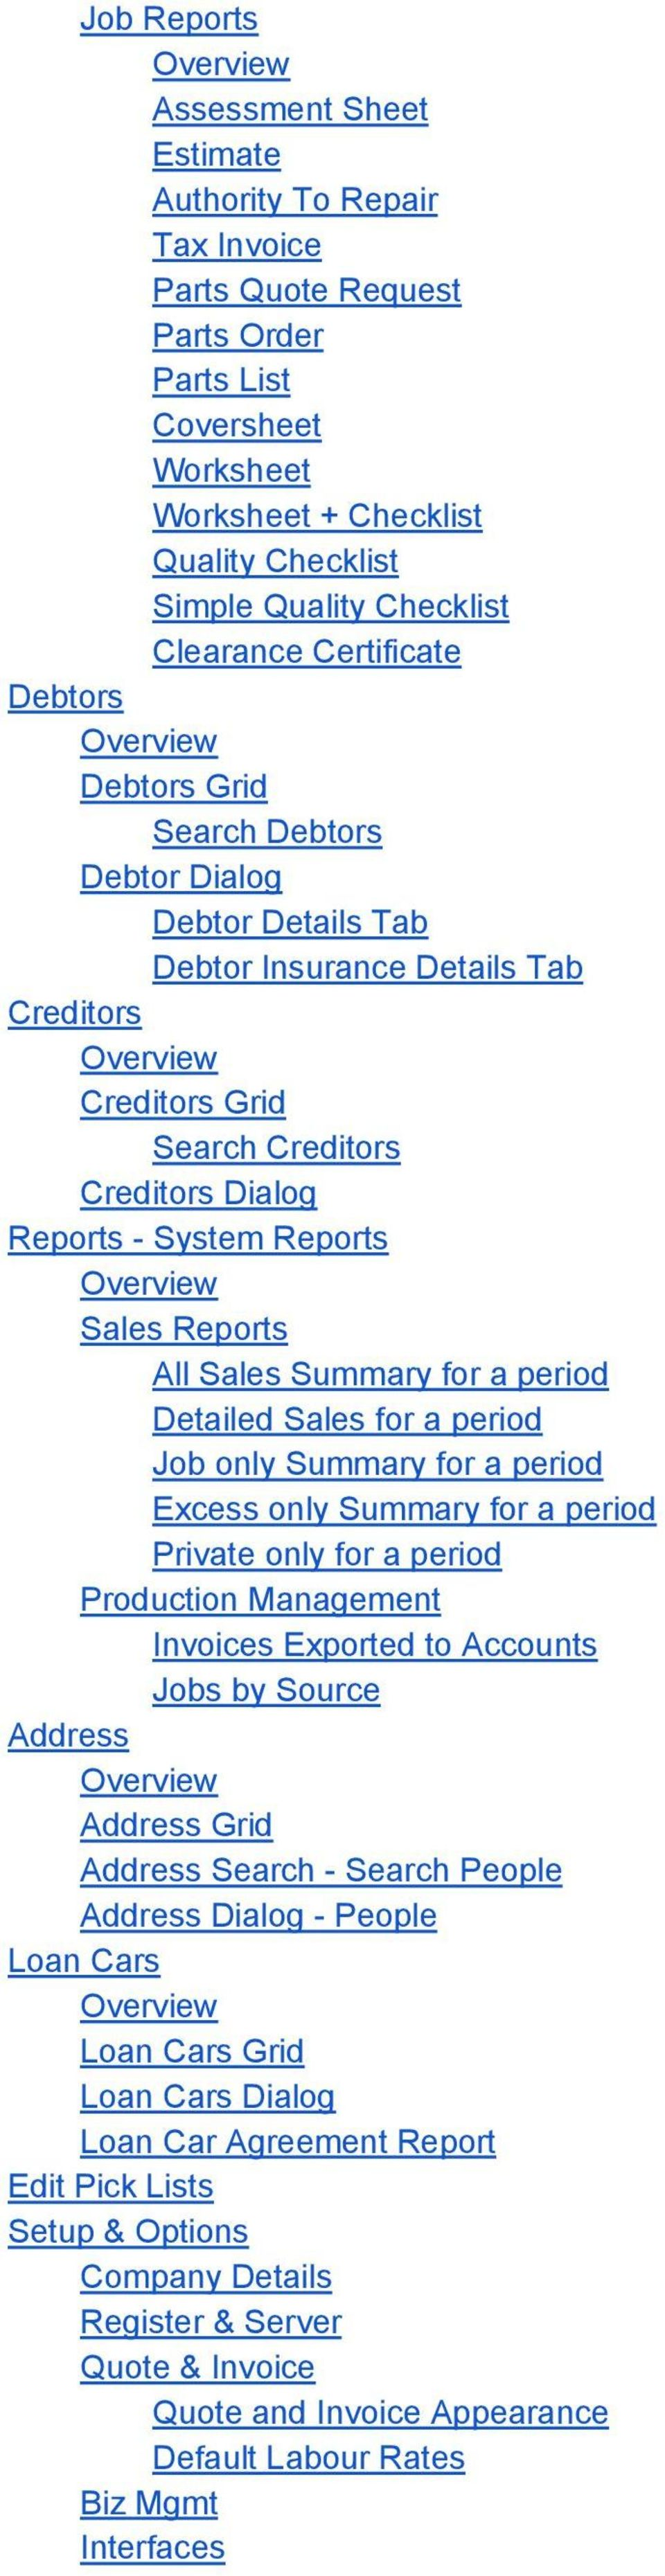 Dialog Reports System Reports Overview Sales Reports All Sales Summary for a period Detailed Sales for a period Job only Summary for a period Excess only Summary for a period Private only for a